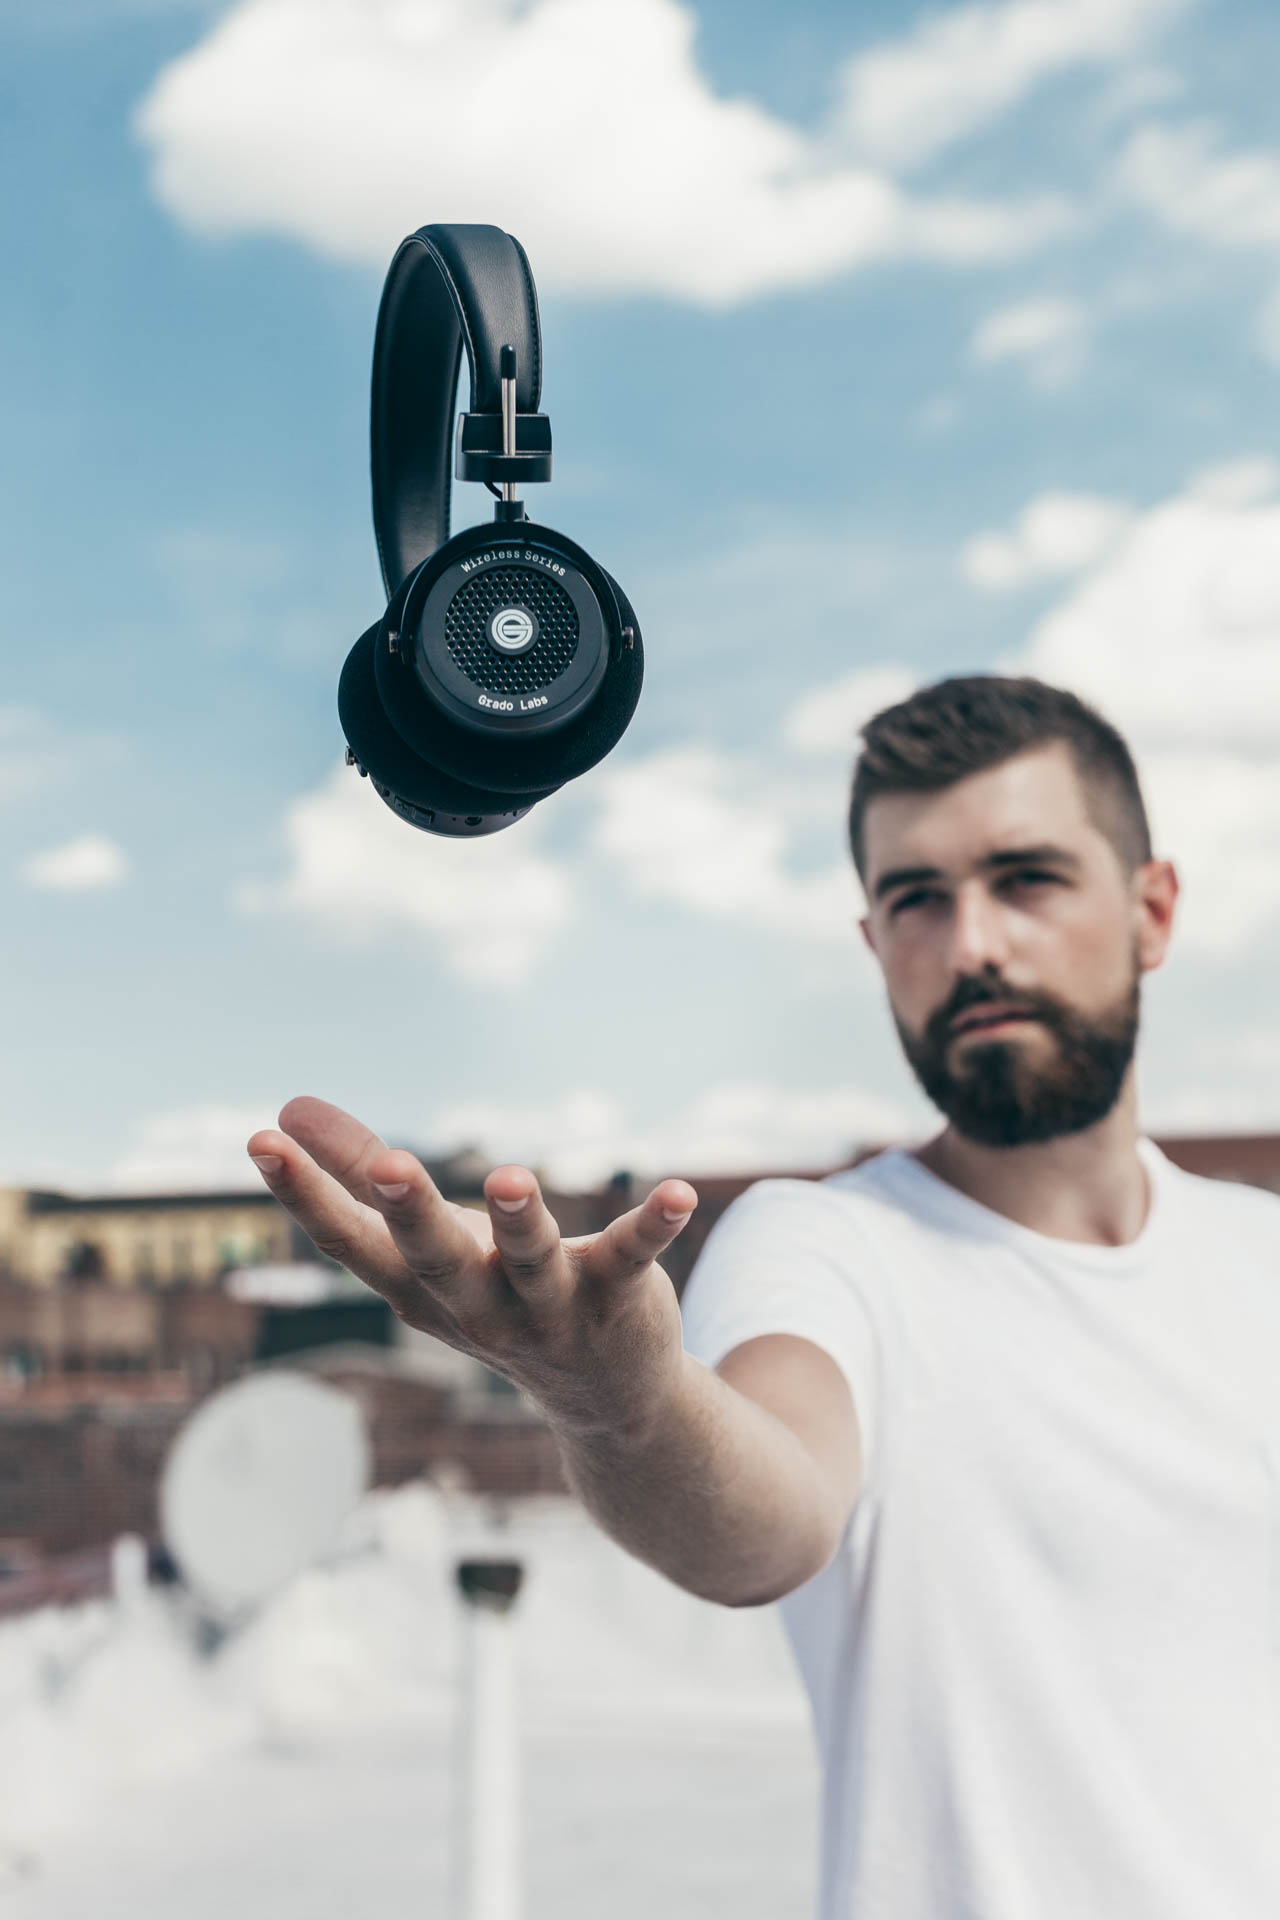 Copy of Levitating Wireless Grado GW100 Headphones by Erick Urgiles